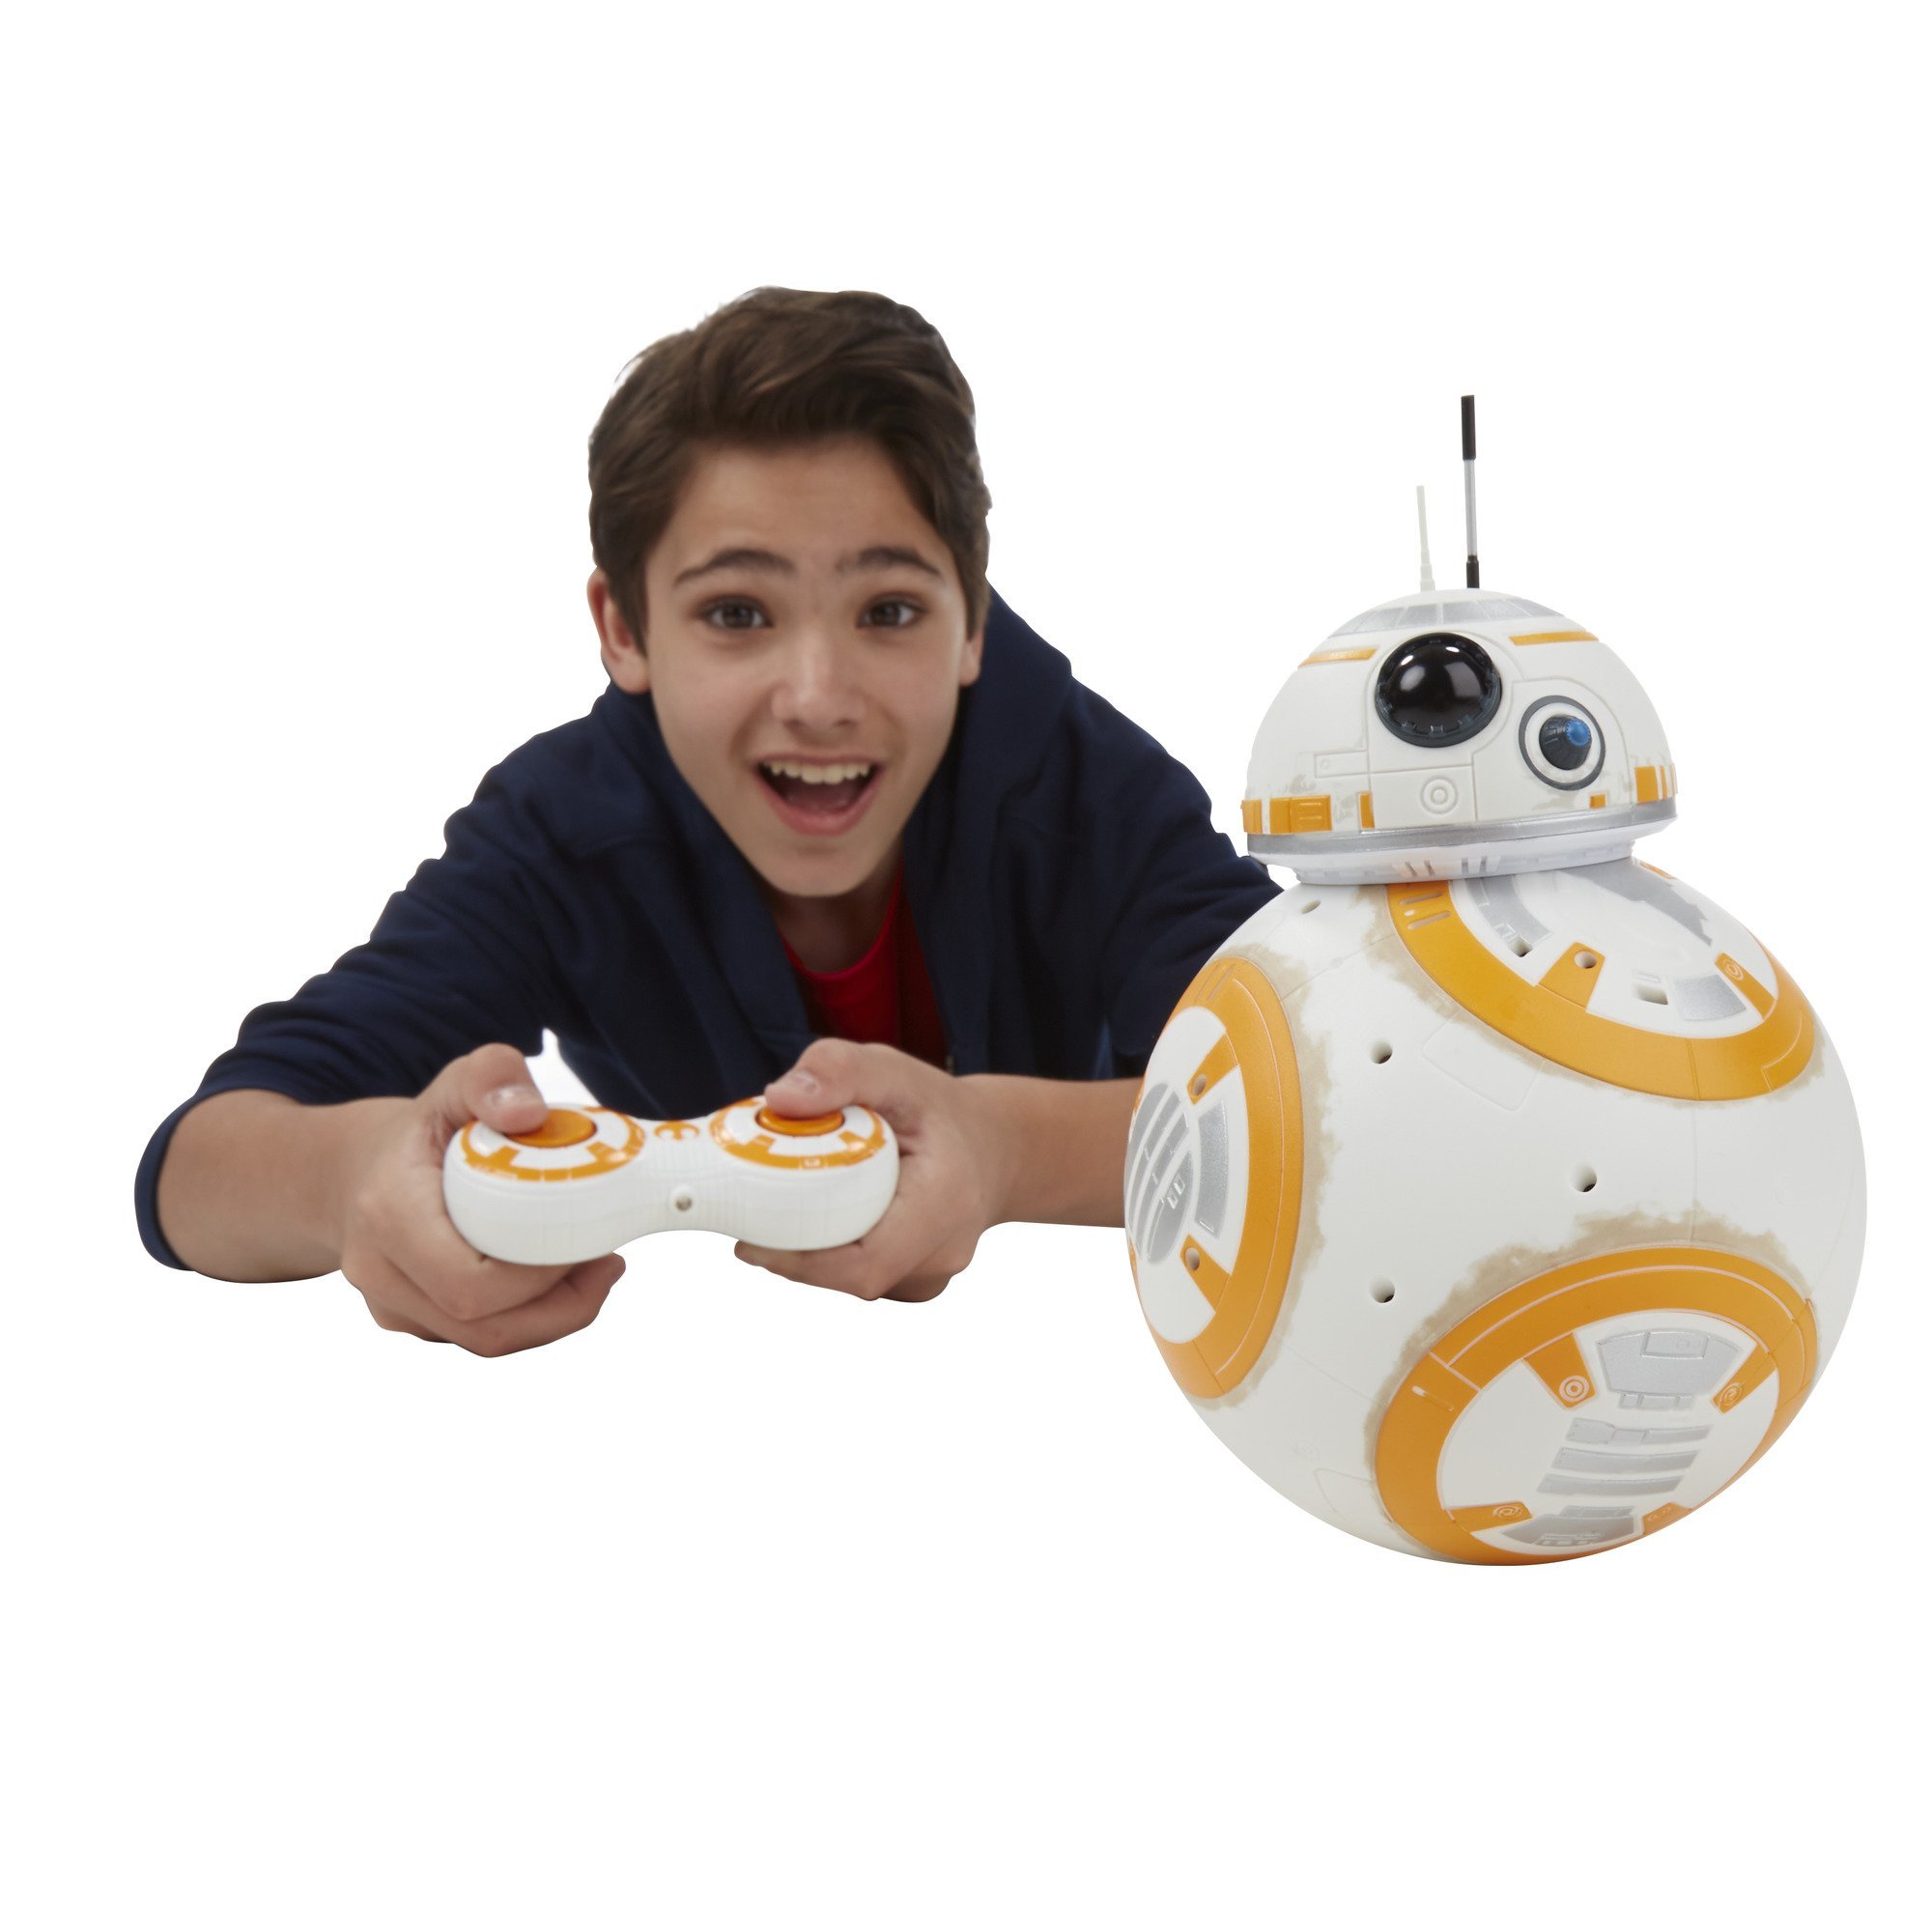 Star Wars The Force Awakens RC BB-8 by Star Wars (Image #13)